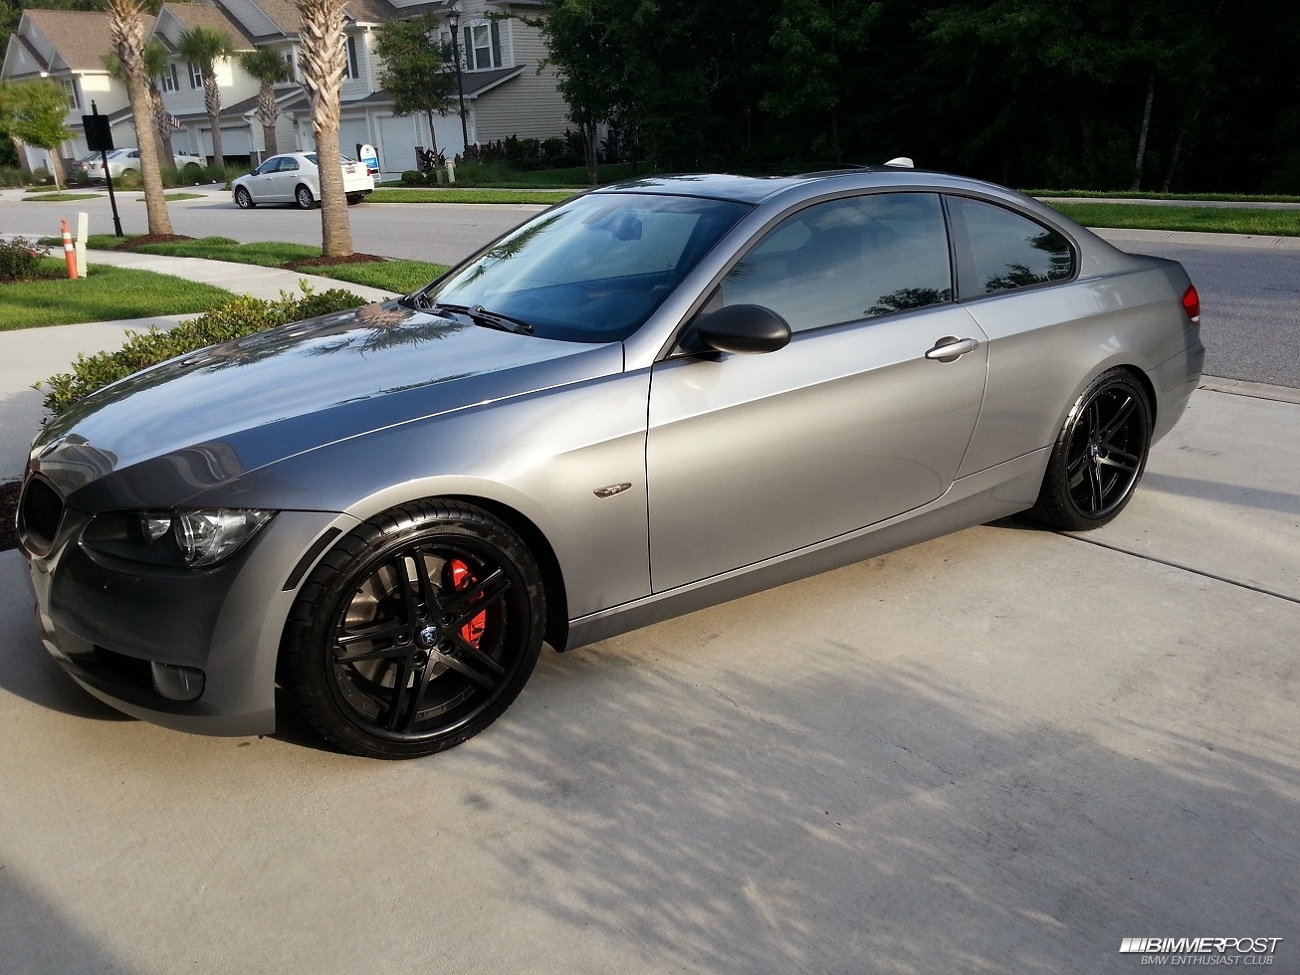 nvn 39 s 2007 bmw 335i e92 bimmerpost garage. Black Bedroom Furniture Sets. Home Design Ideas